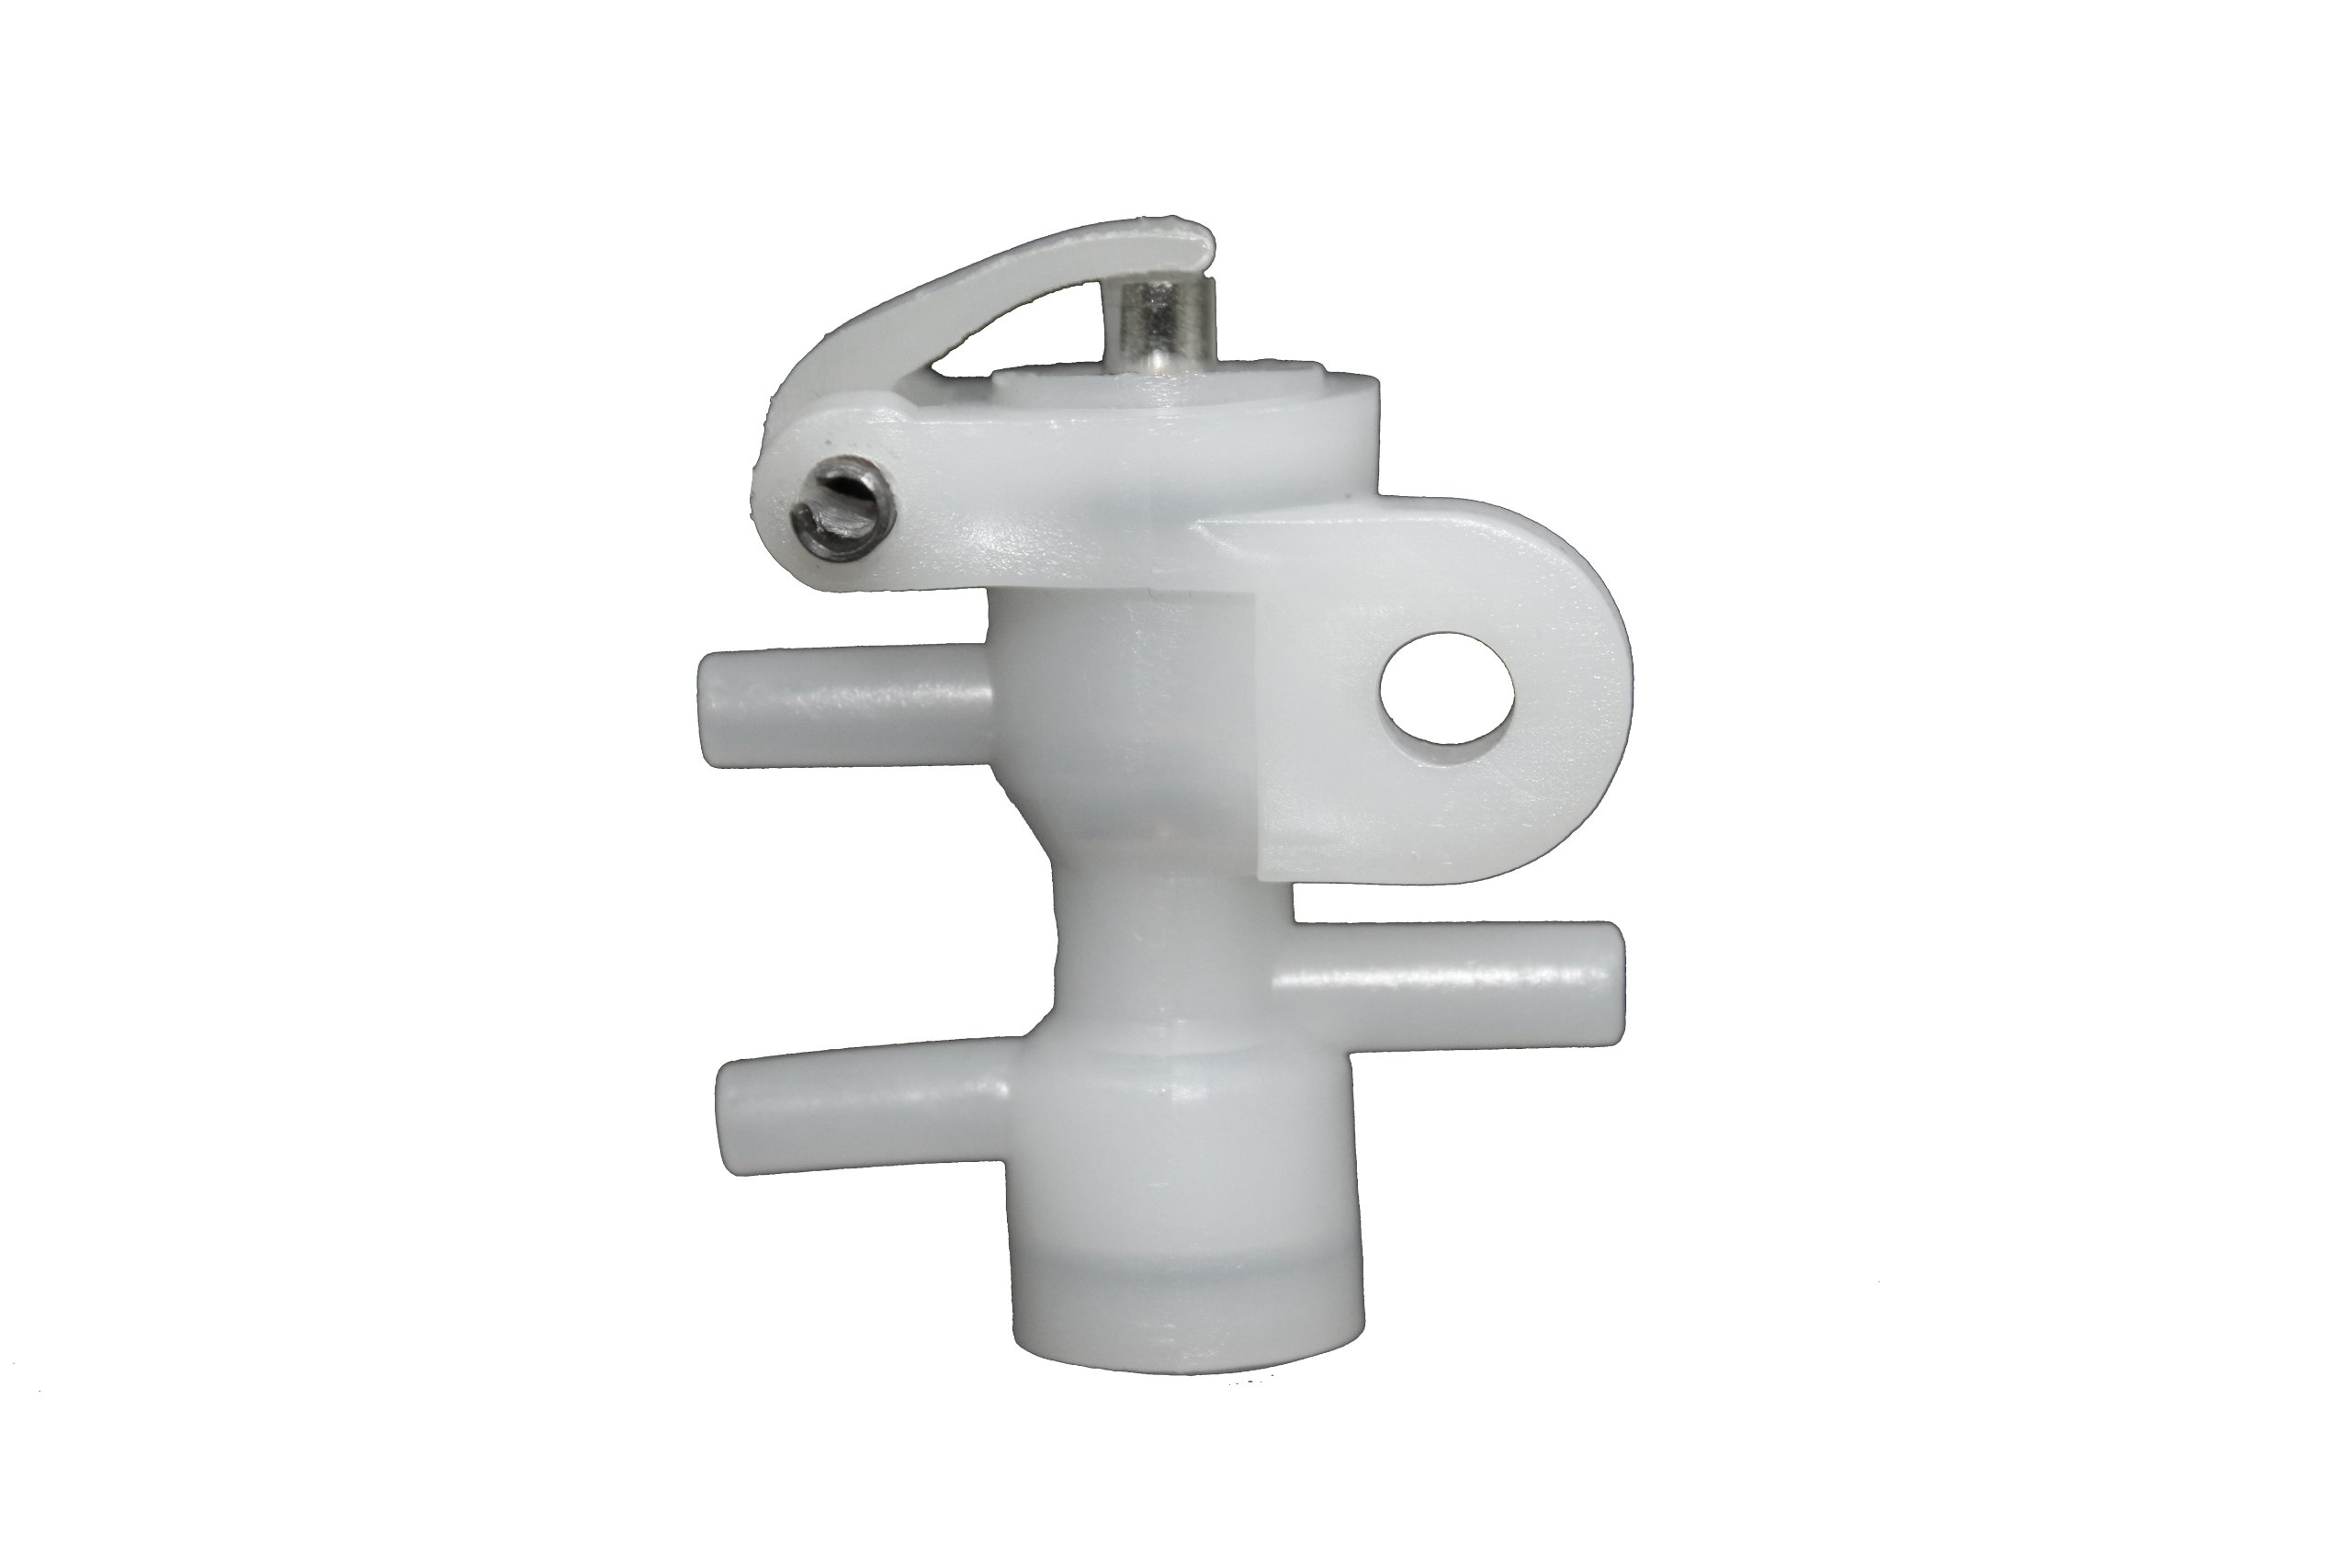 MTC 3056/002-997-53-36 Vacuum Valve (White Plastic 3/2 Way Mounted on Valve Cover, Mercedes models)